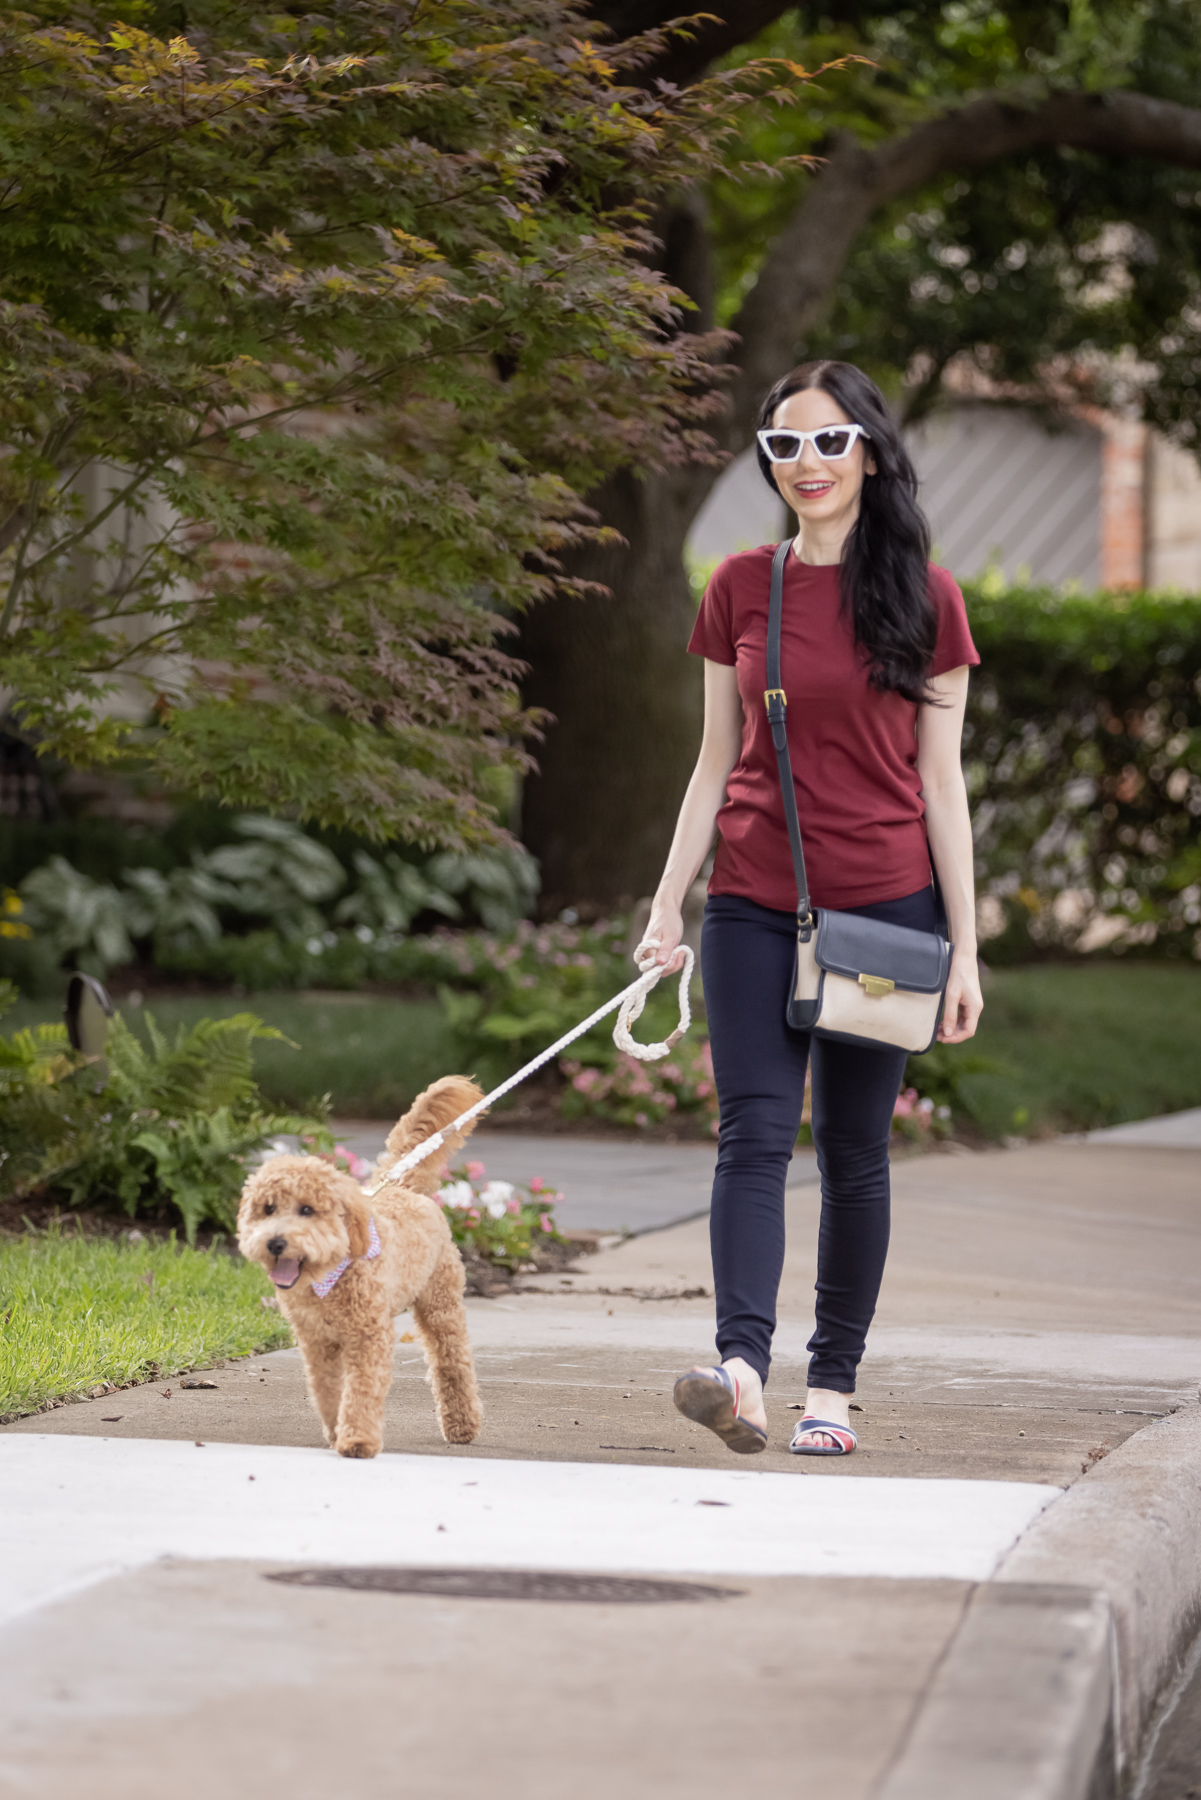 Mott & Bow Jeans and Tee Shirt, Tommy Hilfiger Crossbody Bag, J. Crew Sandals, Italic Cateye Sunglasses, Mini Goldendoodle puppy, Foggy Dog Bowtie, Preppy Style, Dallas Fashion Blogger | Mott and Bow Jeans by popular Dallas fashion blog, Pretty Little Shoppers: image of a woman wearing a crimson t-shirt, Mott and Bow Jeans, blue and red strap slide sandals, and black and tan crossbody bag while walking her doodle breed dog.